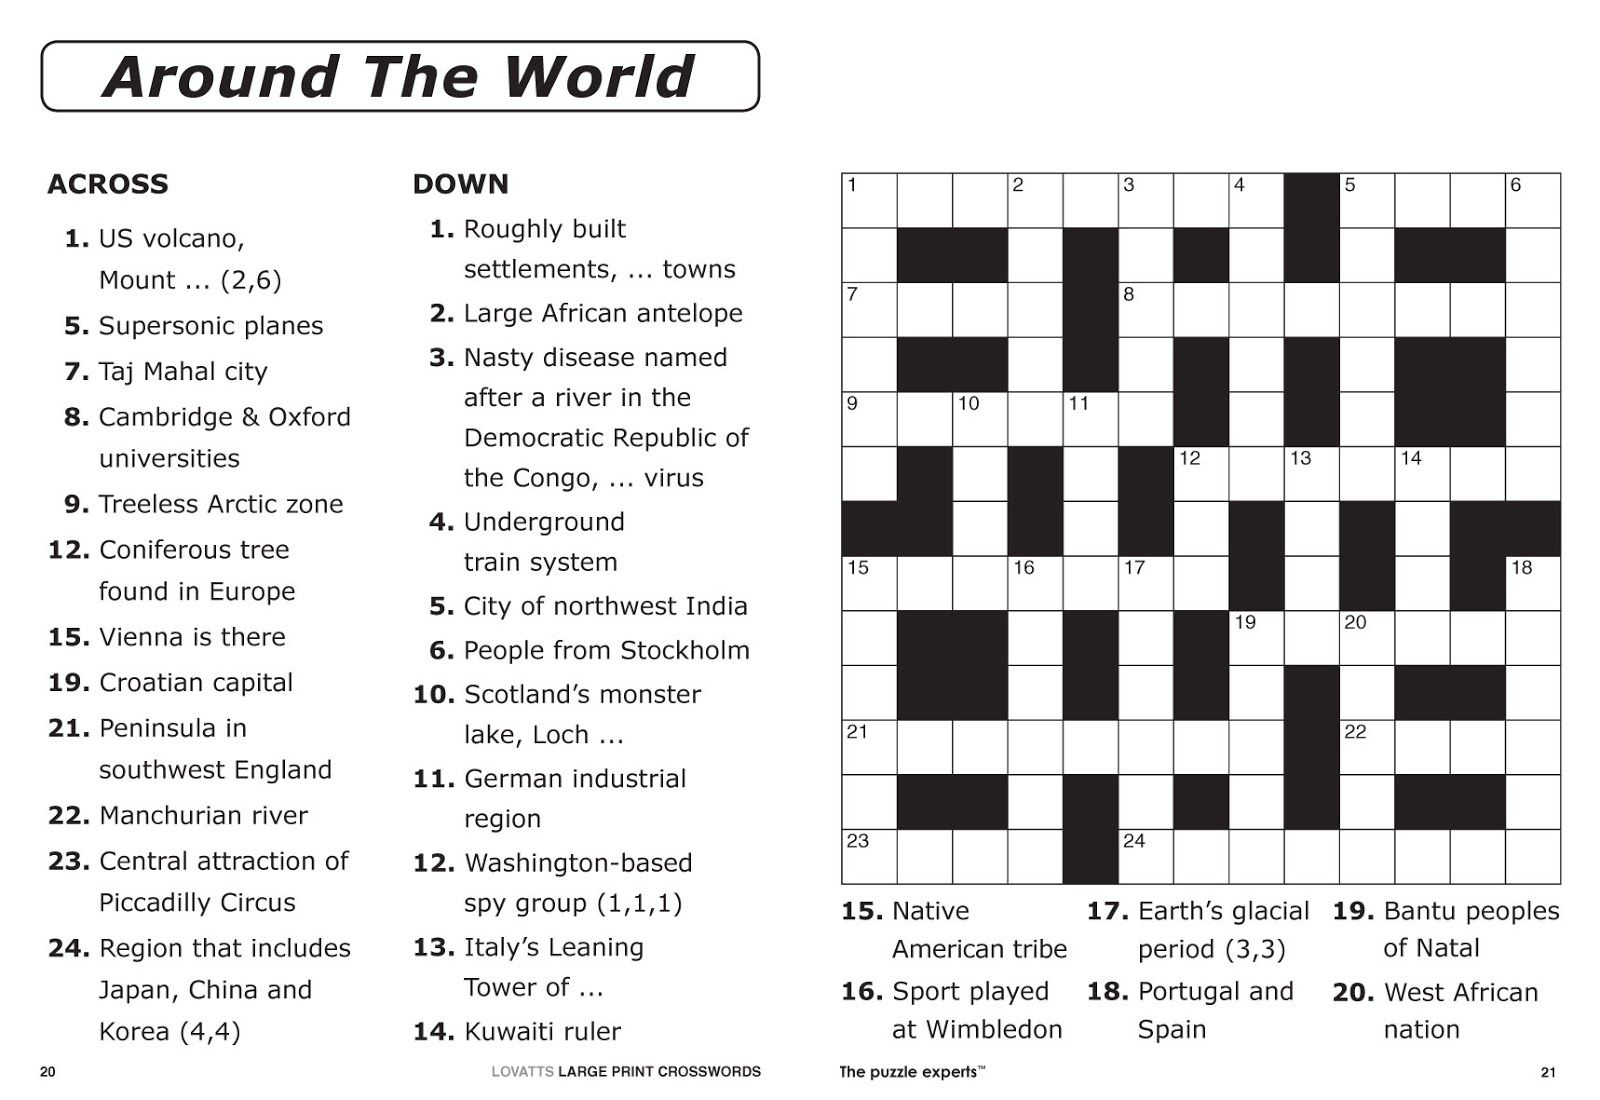 Free Printable Large Print Crossword Puzzles | M3U8 - Printable Puzzles Crosswords